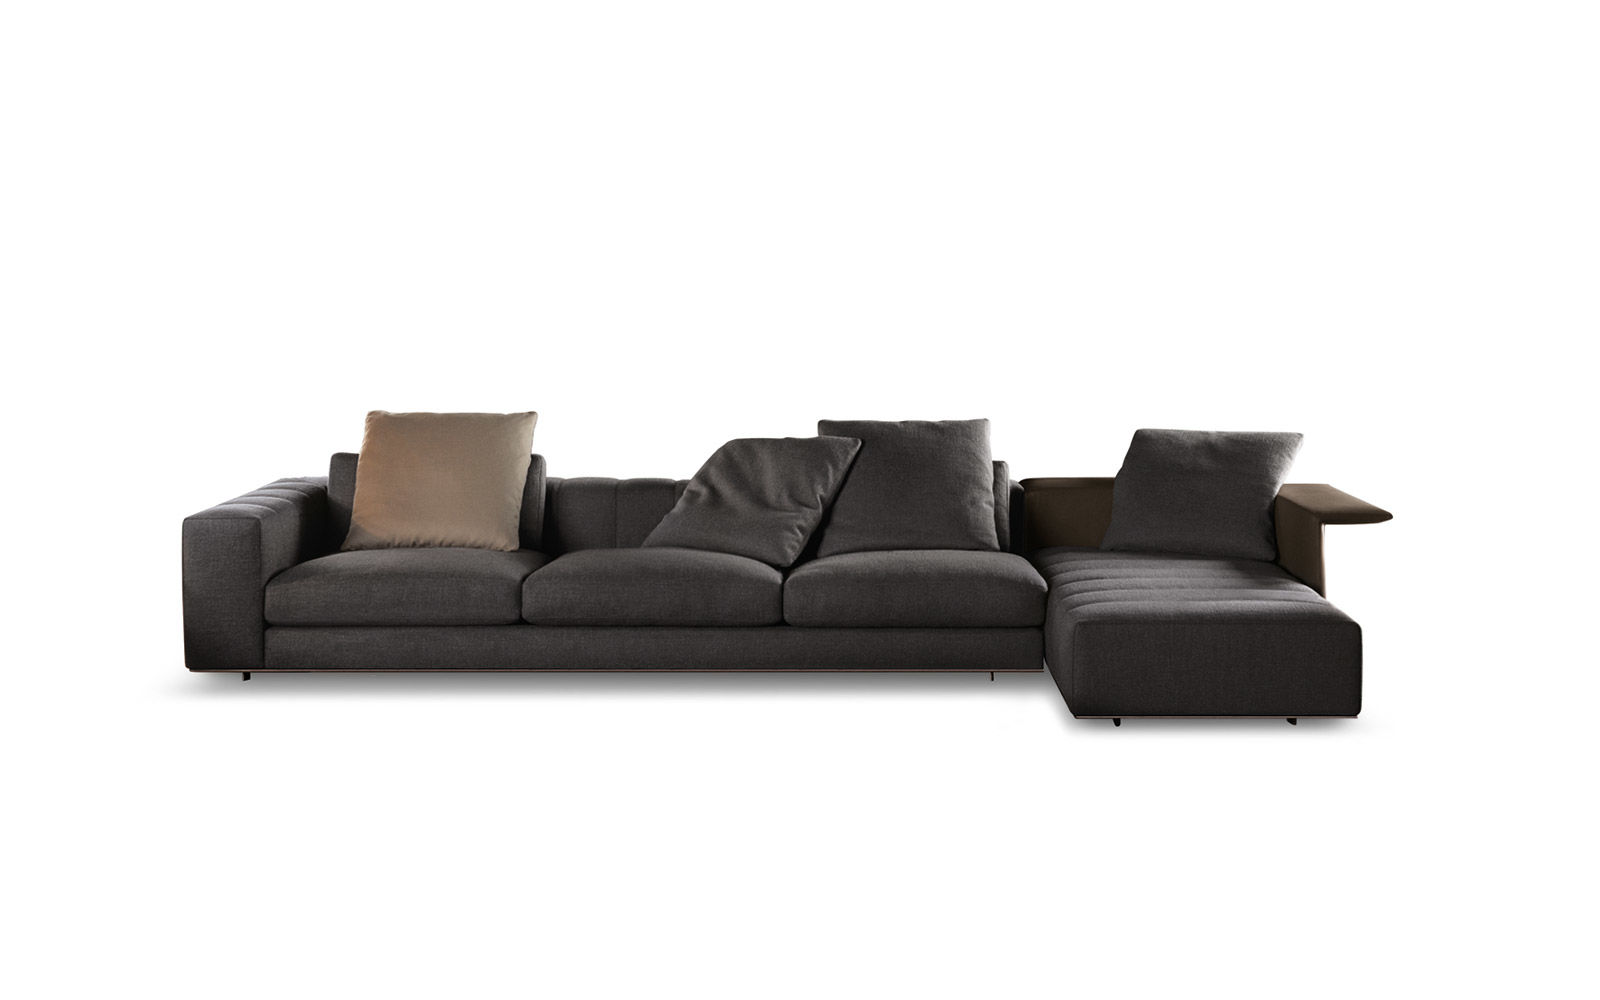 Freeman Seating System Sofas En